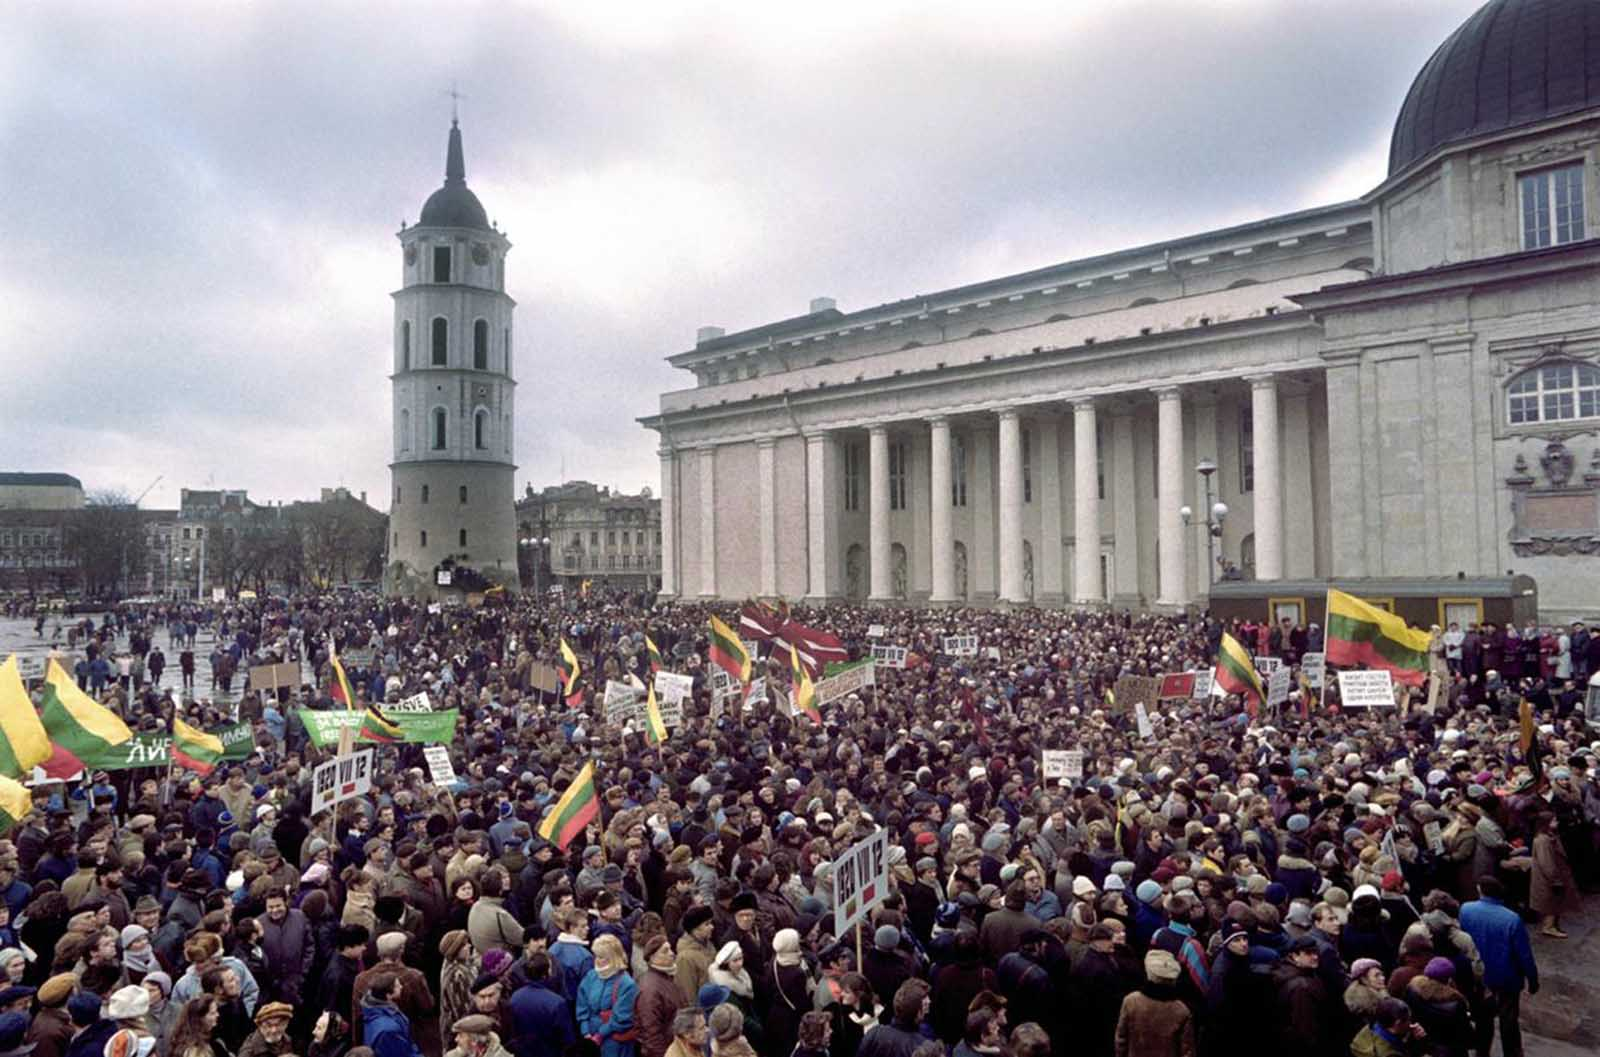 Lithuanians carry Lithuanian flags in the center of Vilnius on January 10, 1990, during demonstration asking for the country's independence. In early 1990, Sajudis-Reform Movement of Lithuania backed candidates won the elections to the Lithuanian Supreme Soviet. On March 11, 1990, the Supreme Soviet proclaimed the re-establishment of Lithuanian independence. The Baltic republics were in forefront of the struggle for independence and Lithuania was the first of the Soviet republics to declare independence.